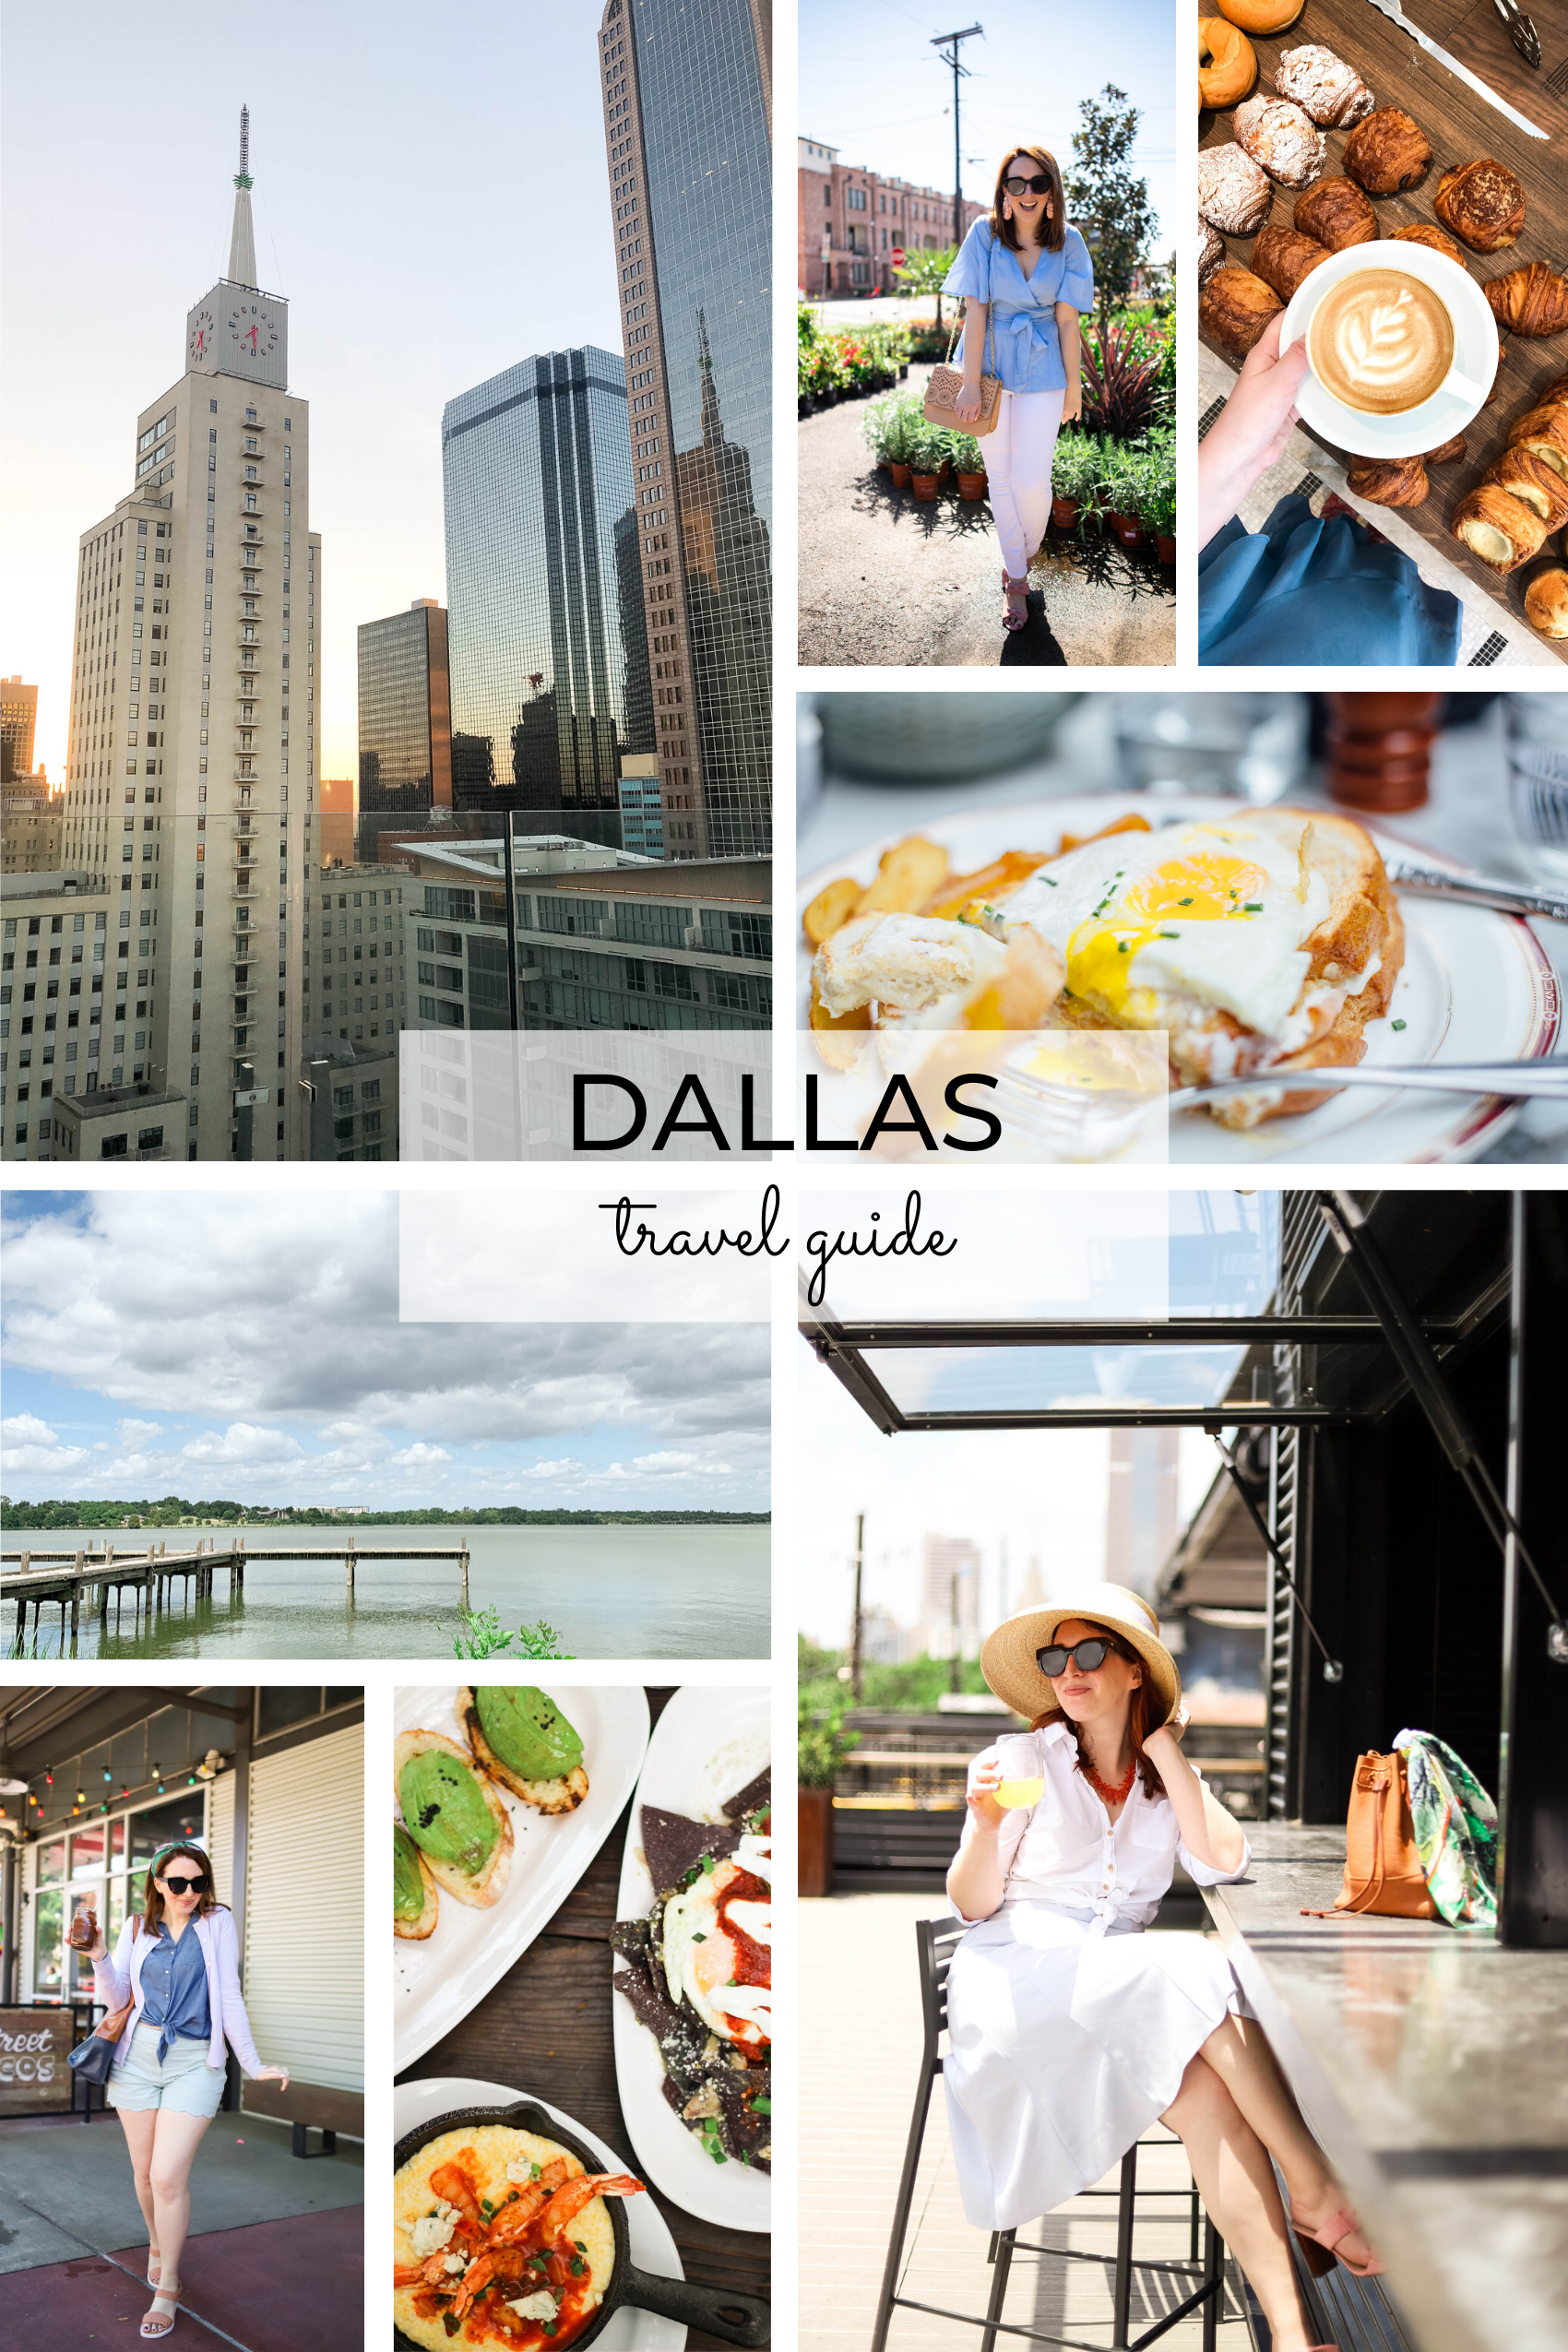 Dallas Travel Guide | Where to Eat in Dallas | What to Do in Dallas | Where to Stay in Dallas | Long Weekend in Dallas | Dallas City Guide by Travel Blogger Glitter & Spice